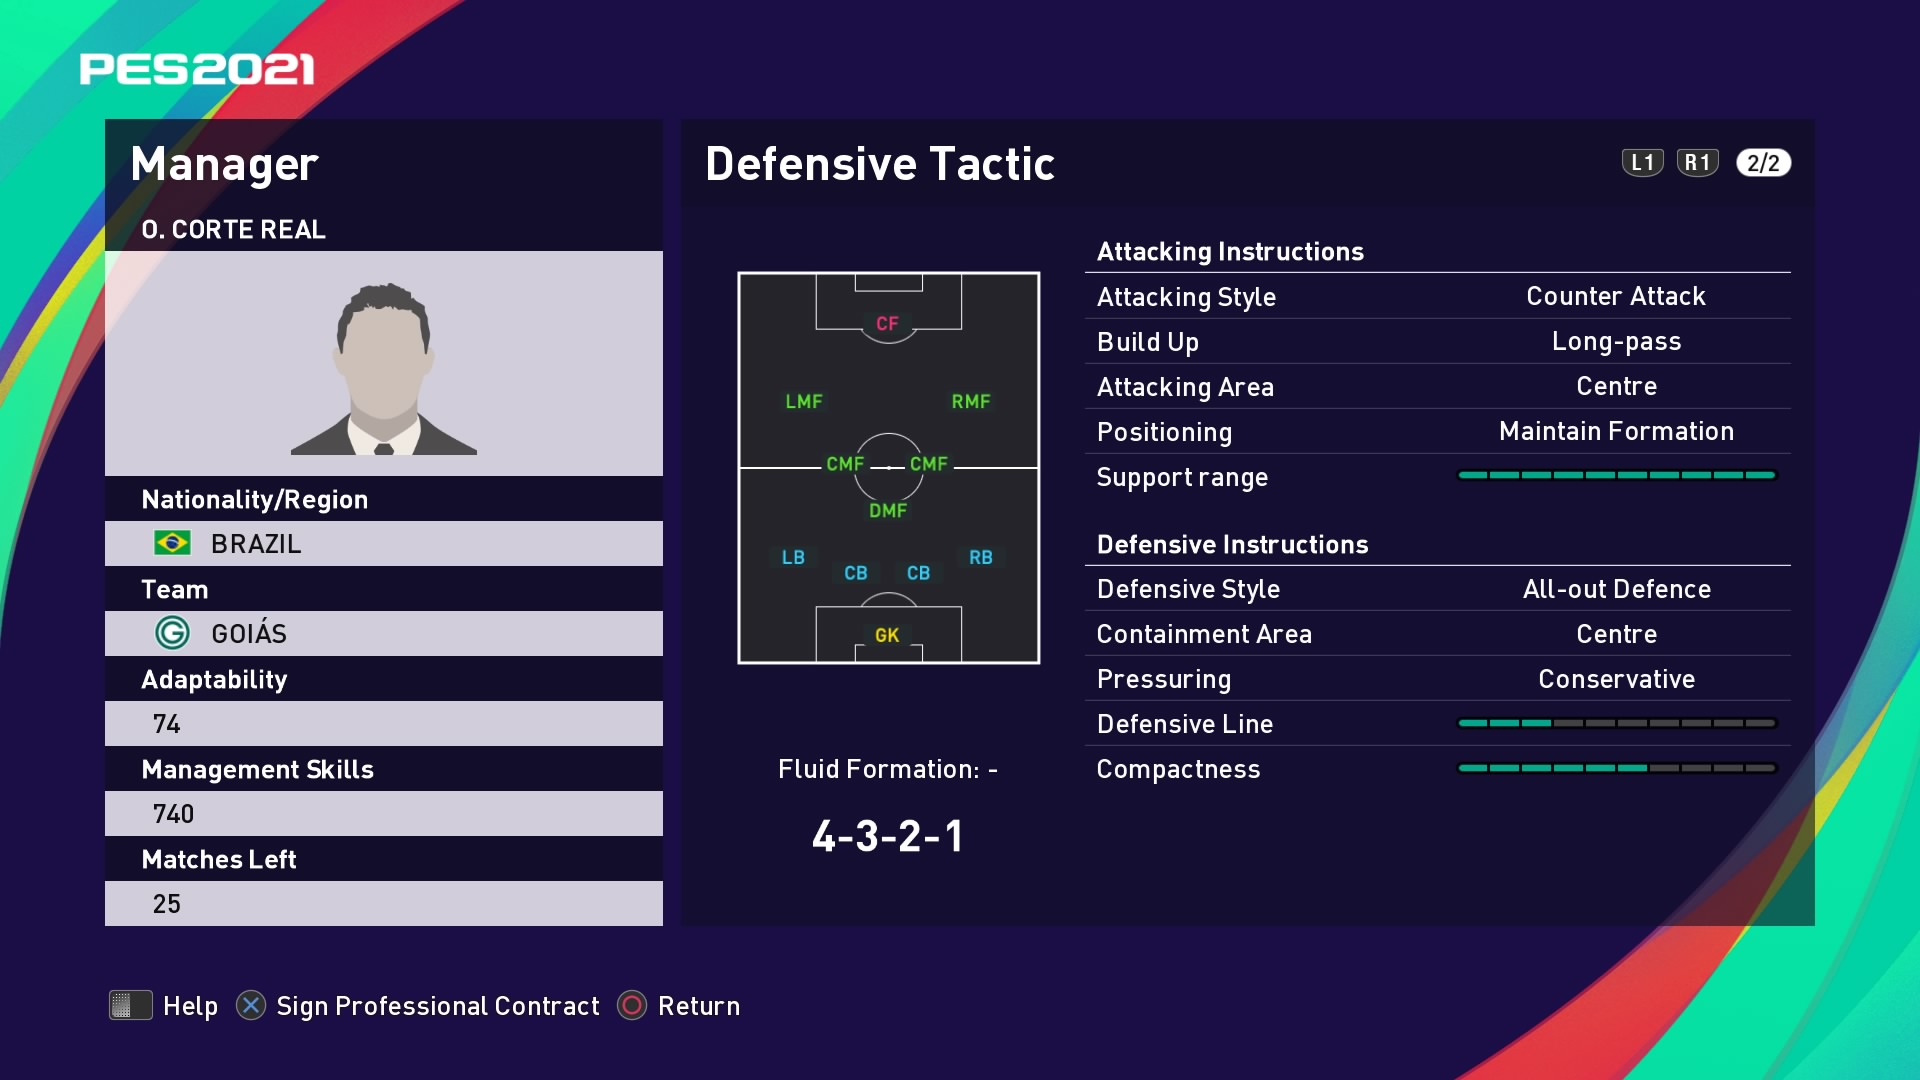 O. Corte Real (Thiago Larghi) Defensive Tactic in PES 2021 myClub